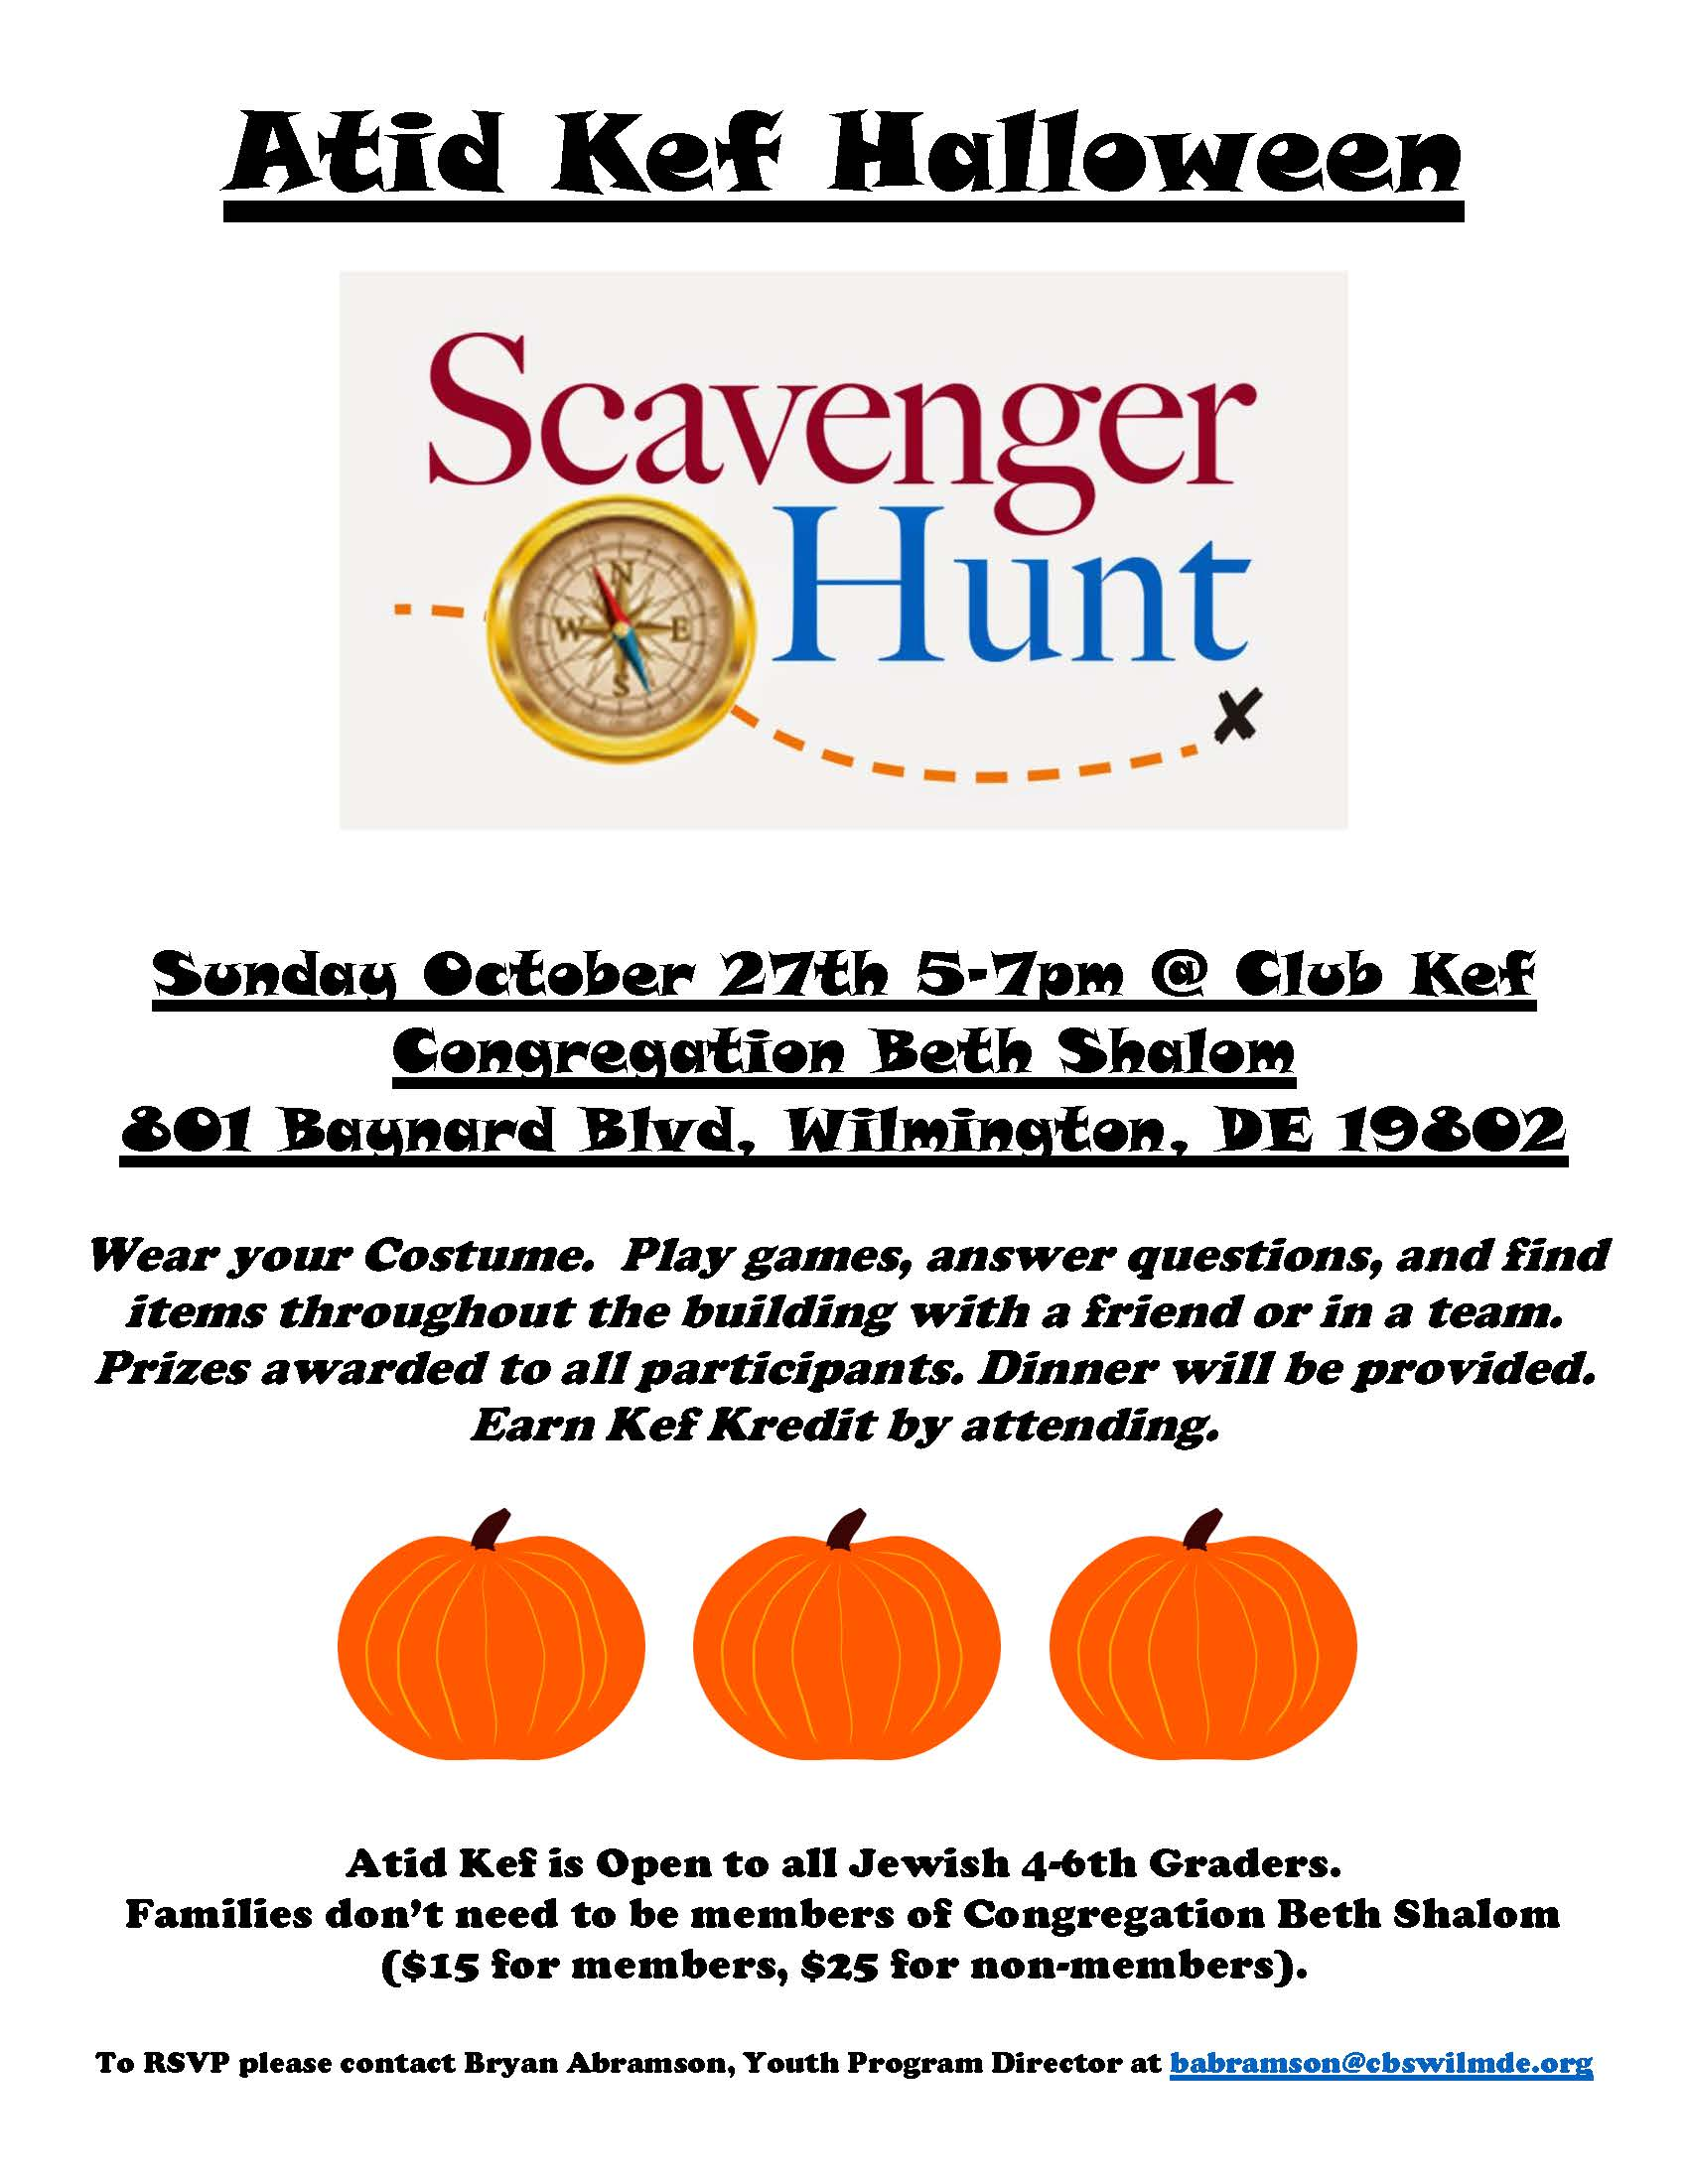 Atid Kef Halloween Scavenger Hunt-Open to all Jewish 4-6th Graders